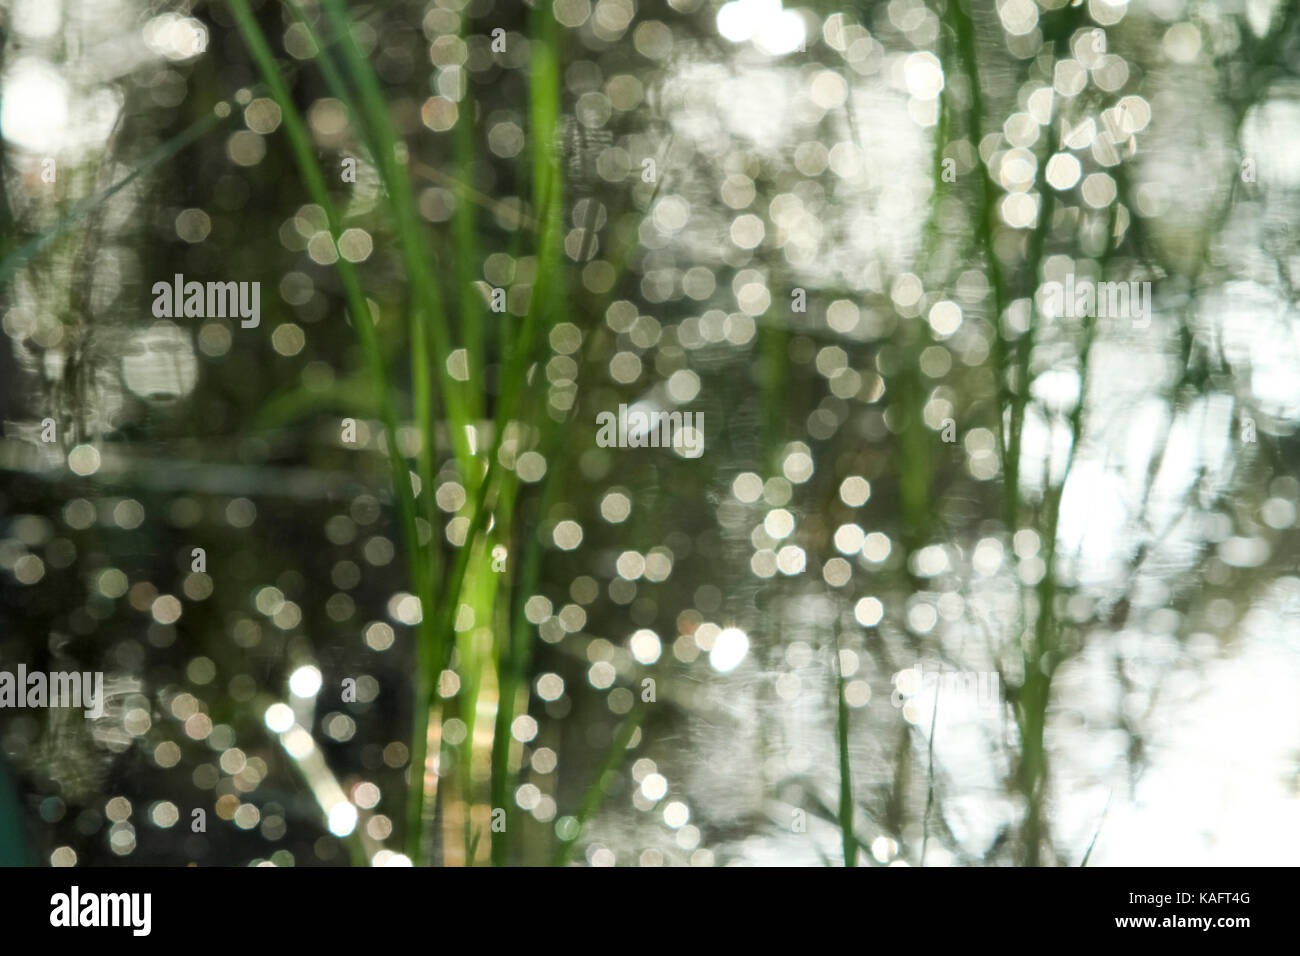 Mystical forest - close up of lush green leafs - Stock Image